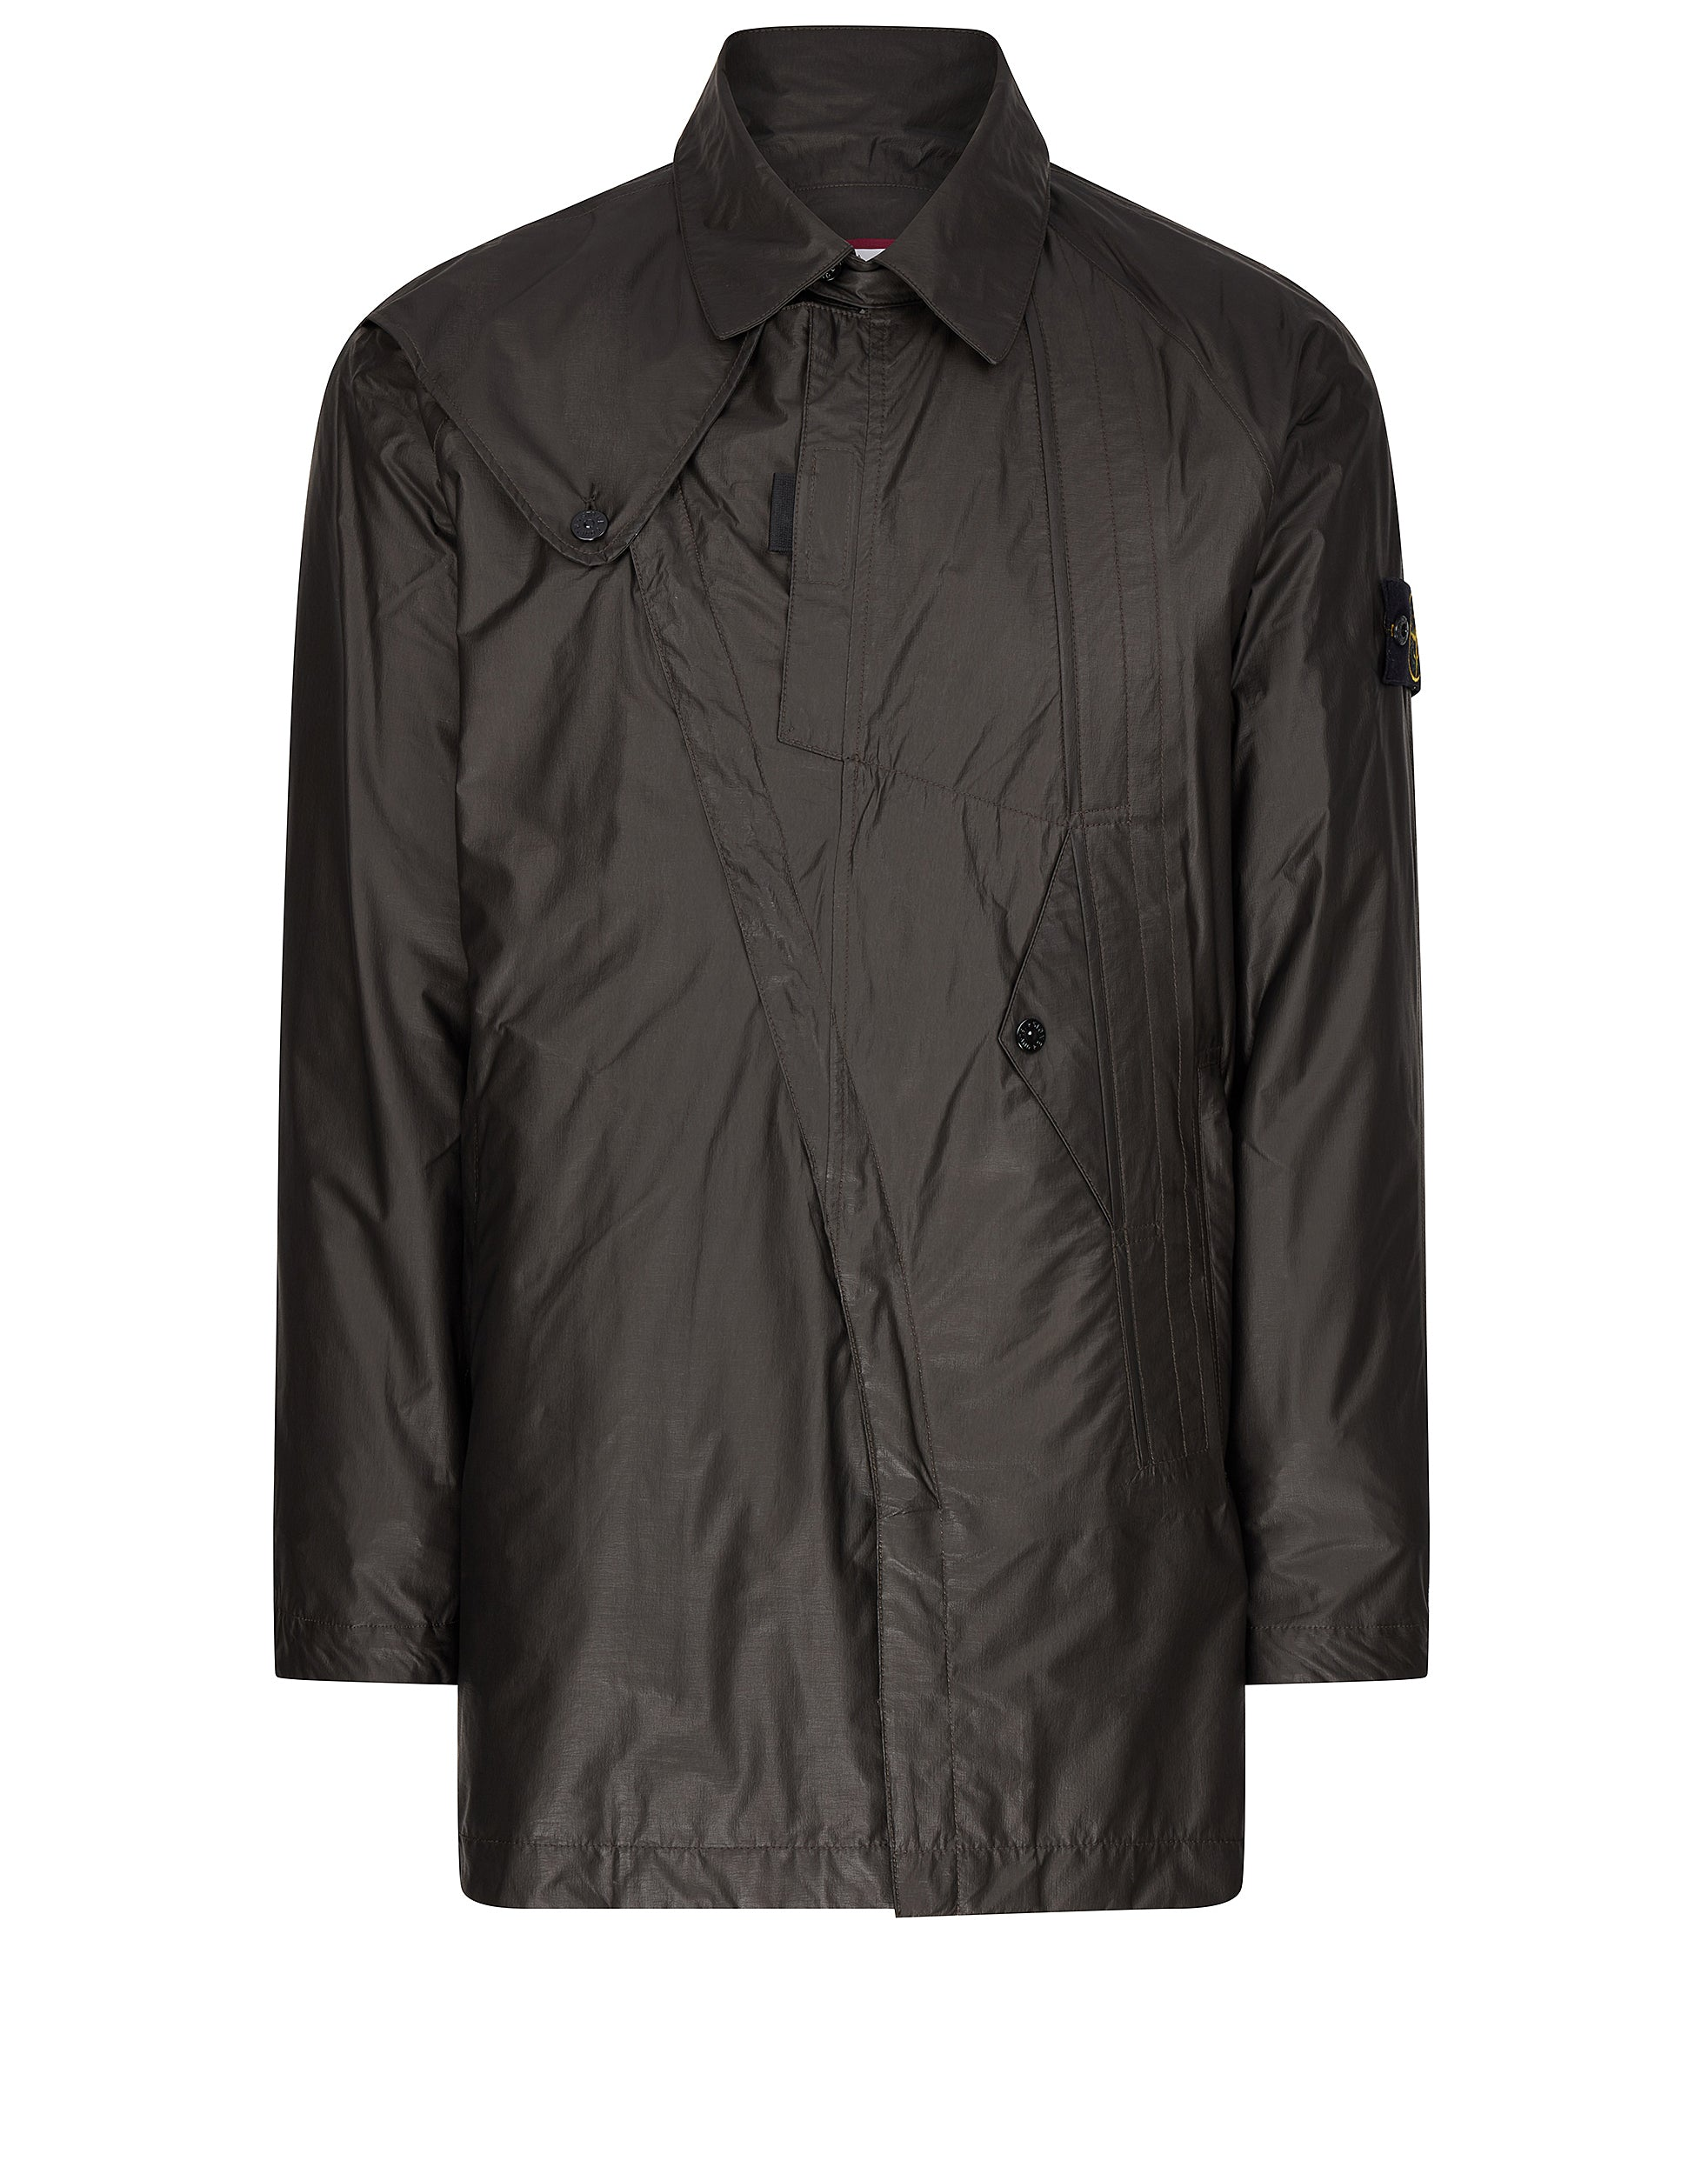 435Y1 PERMANENT WATER REPELLER GORE-TEX WITH SHAKEDRY TECHNOLOGY_PACKABLE Jacket in Black